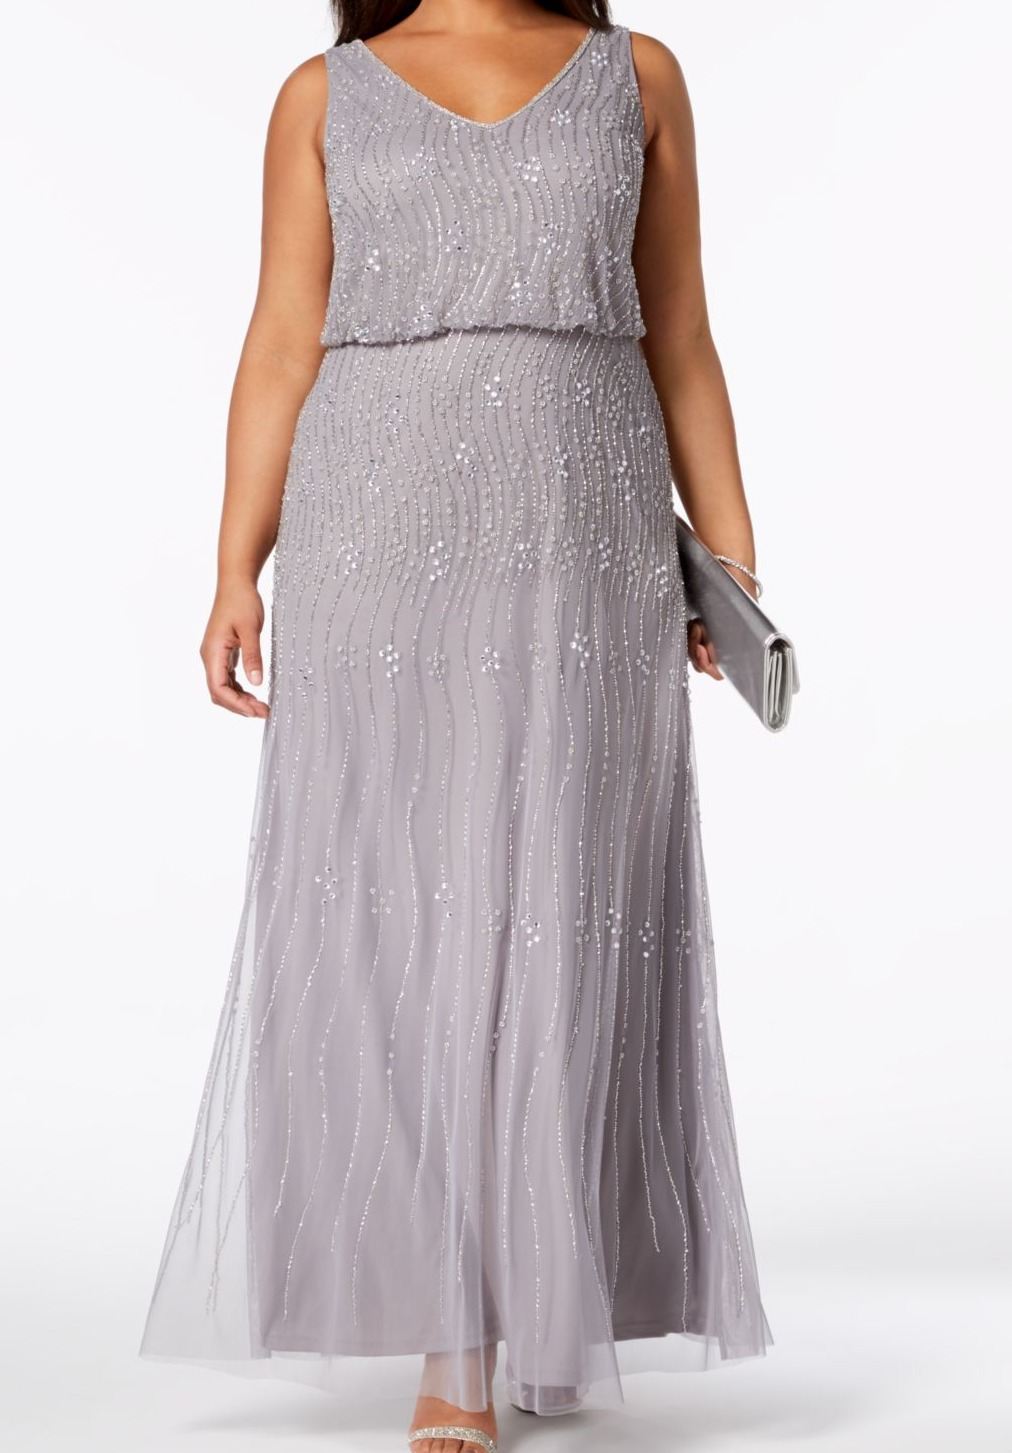 89bf49aa Adrianna Papell NEW Silver Beaded Blouson 16W Plus Gown Mesh Dress $309-  #100